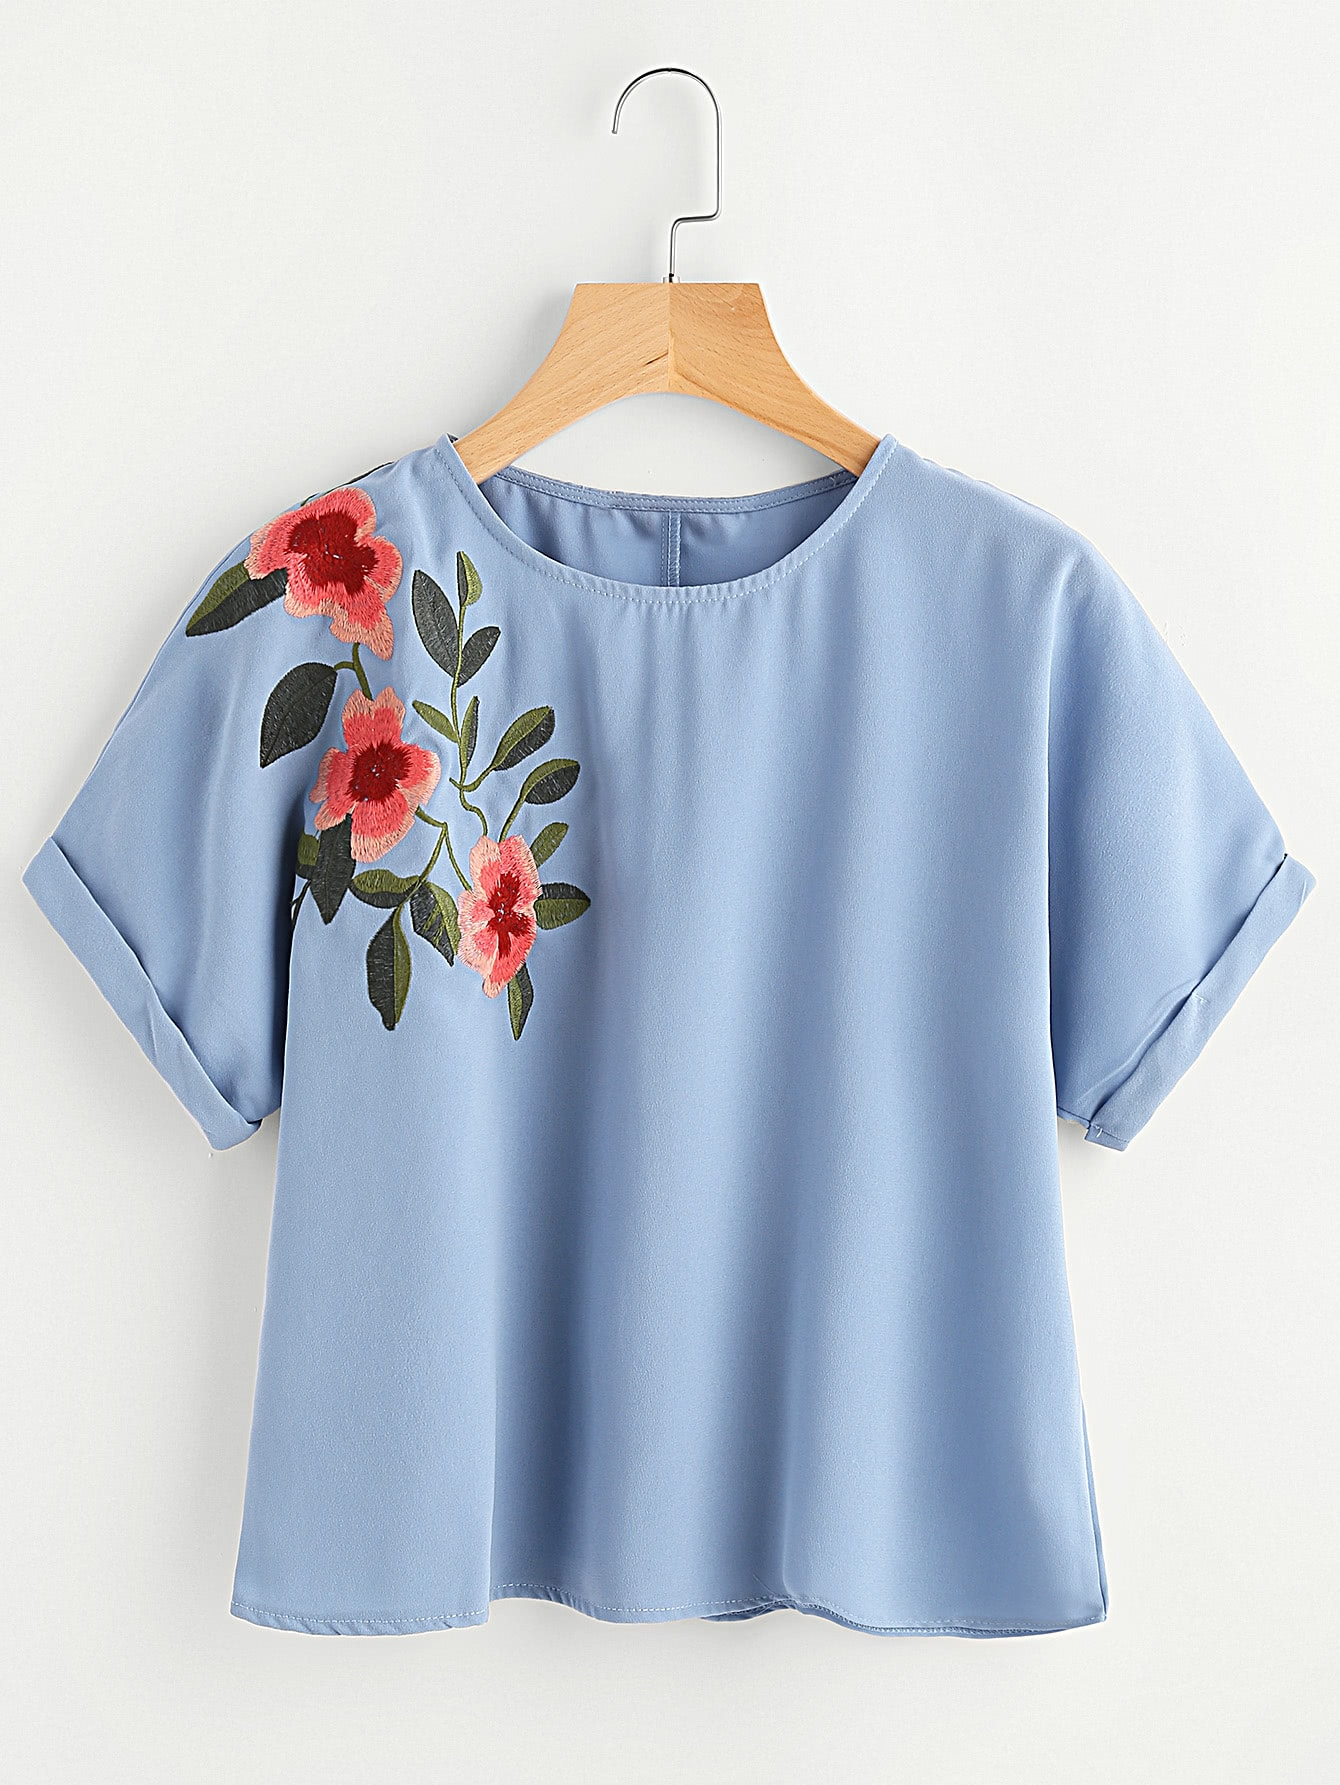 Flower Embroidered Cuffed Sleeve Top flower embroidered trumpet sleeve top